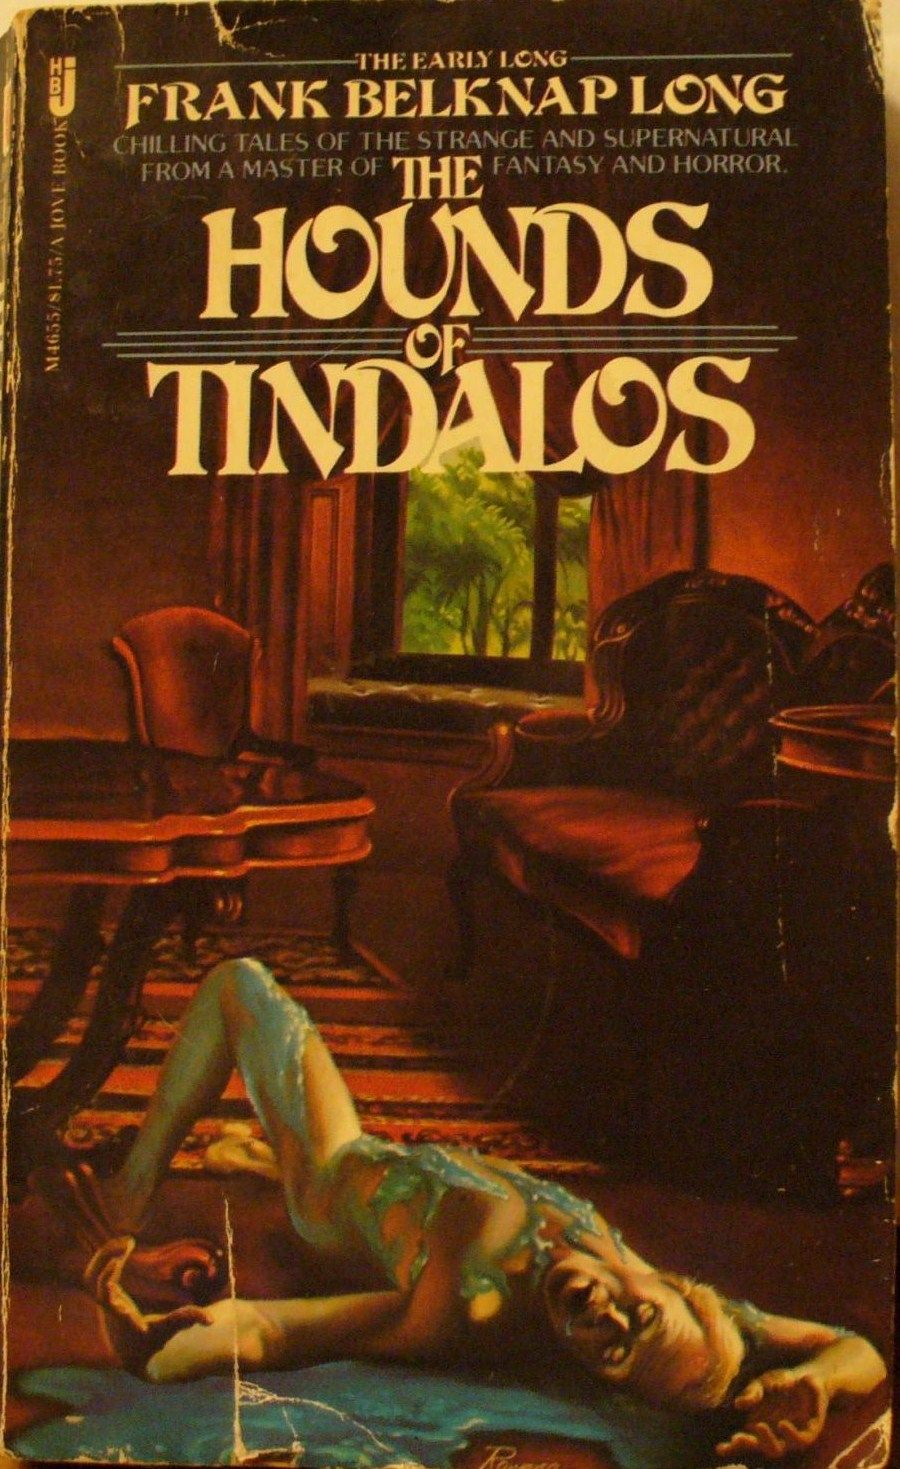 The Hounds of Tindalos by Frank Belknap Long